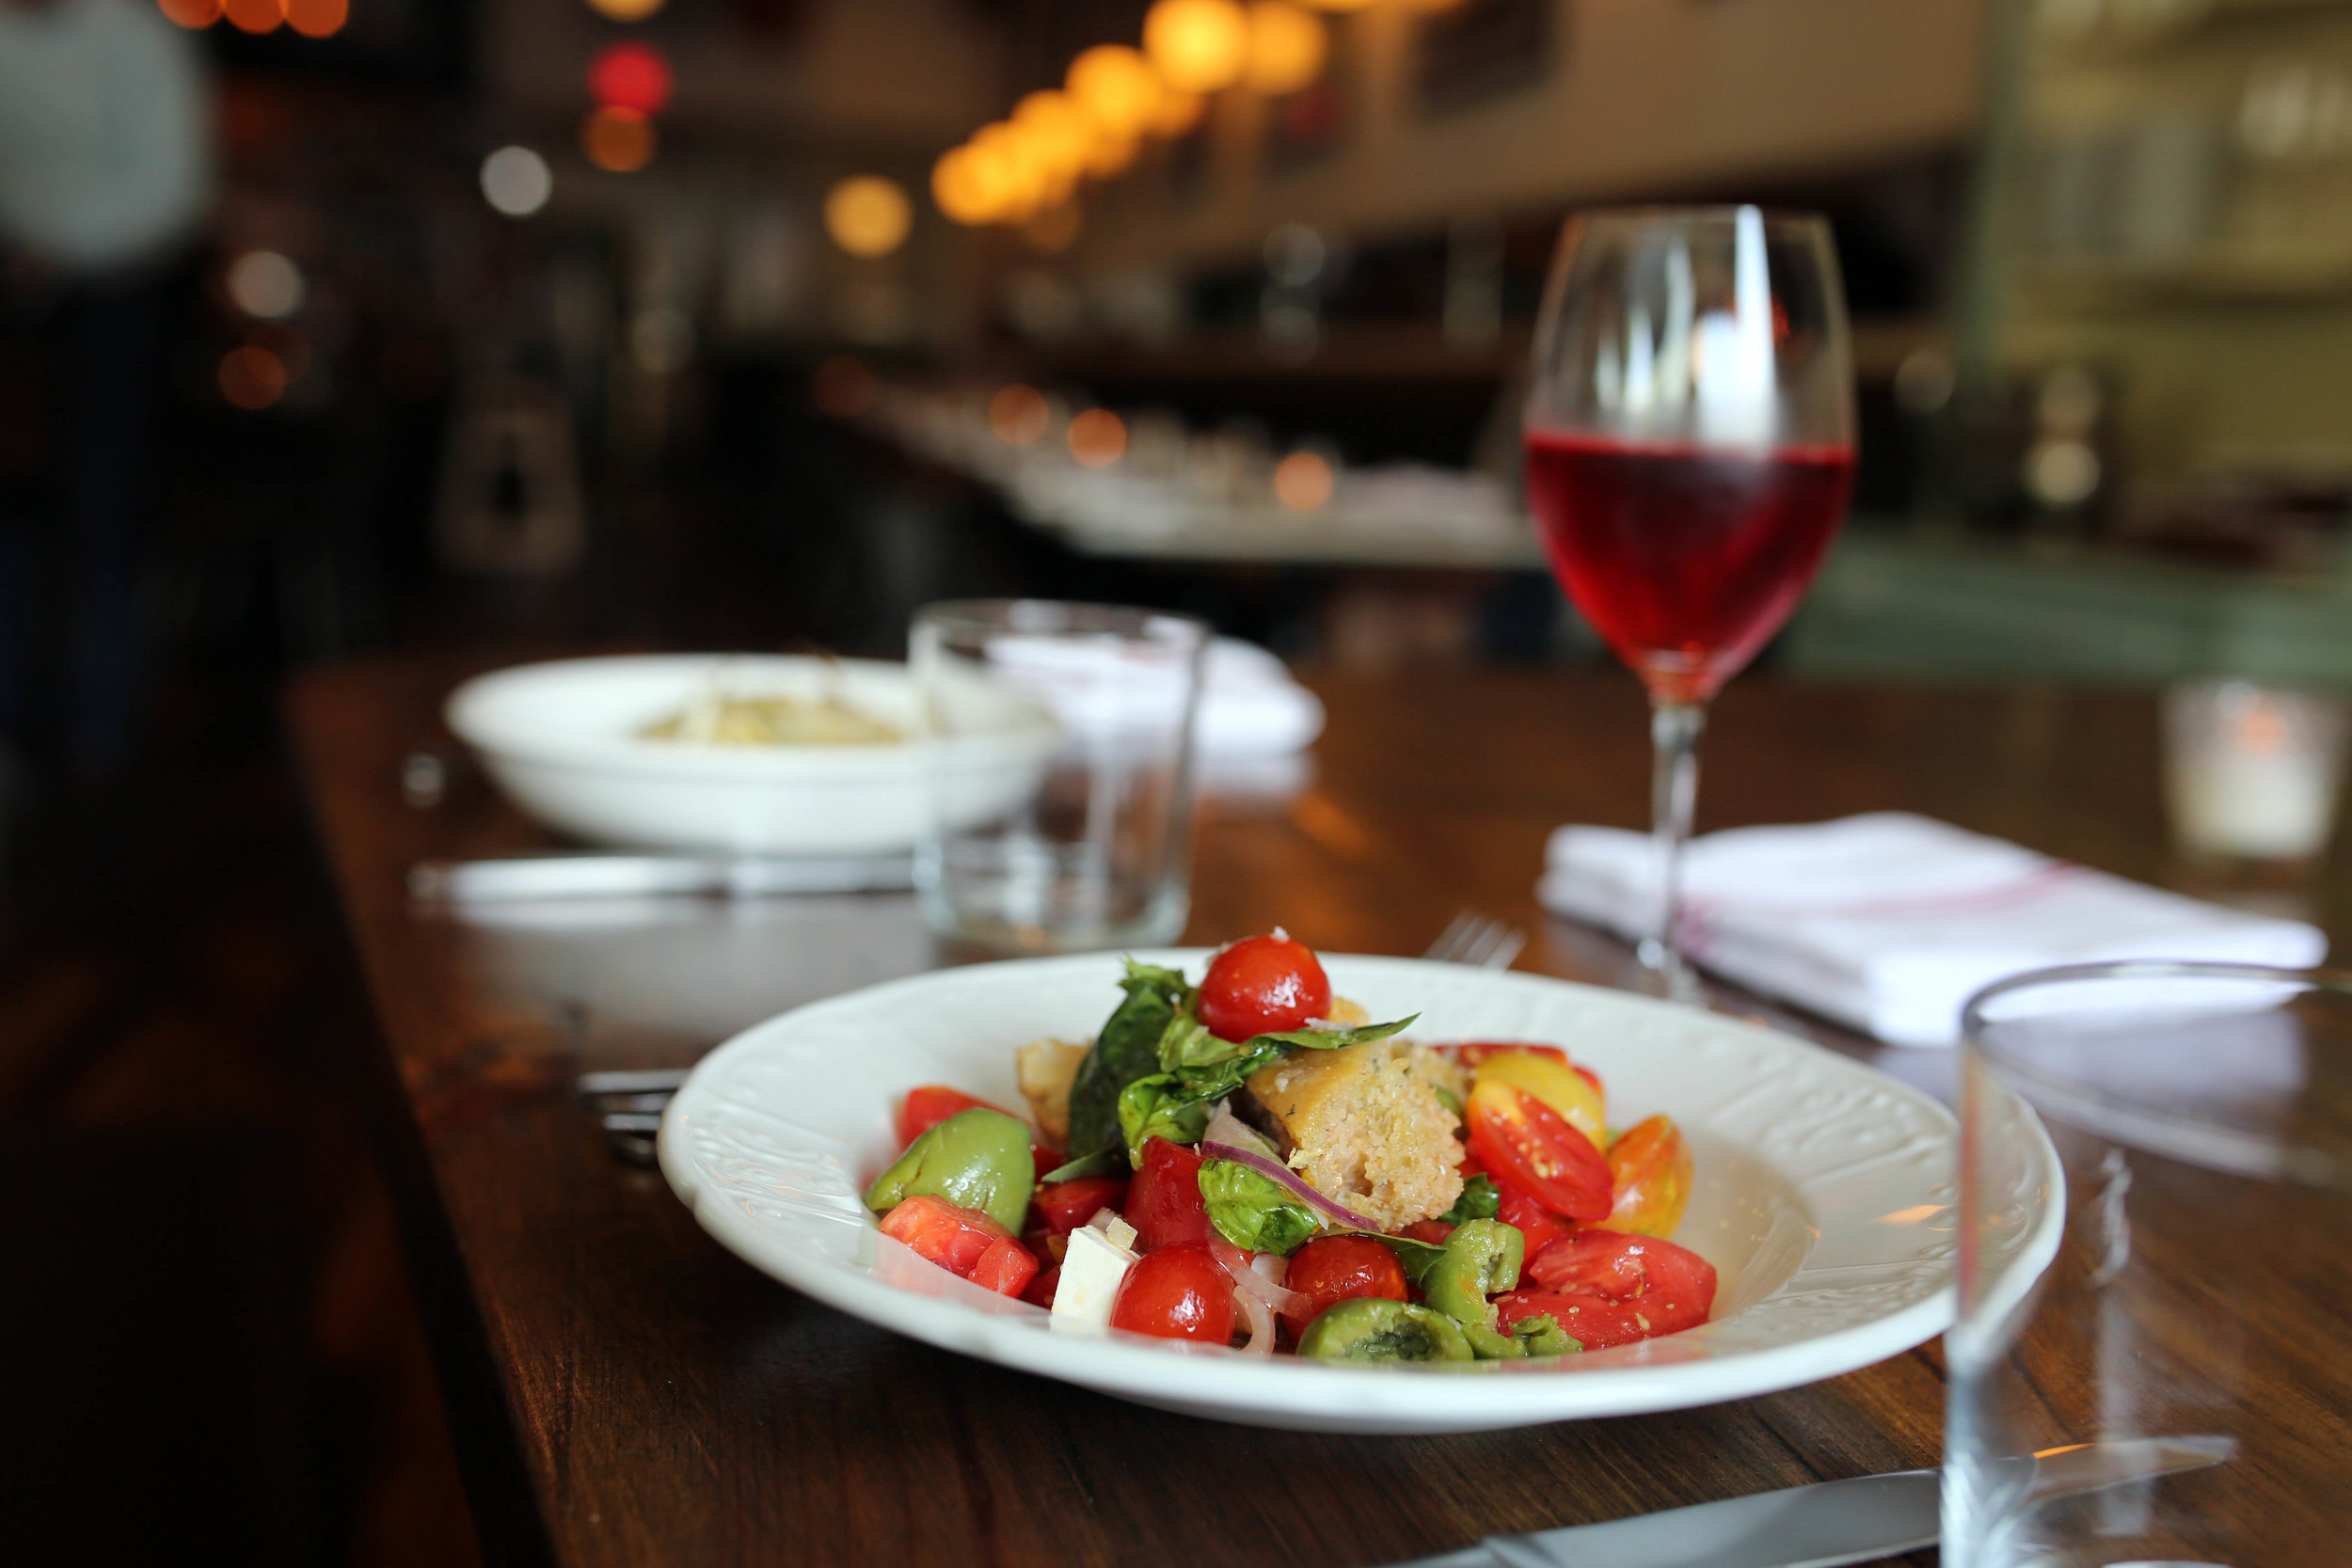 panzanella (bread salad with heirloom tomatoes, olives and basil)